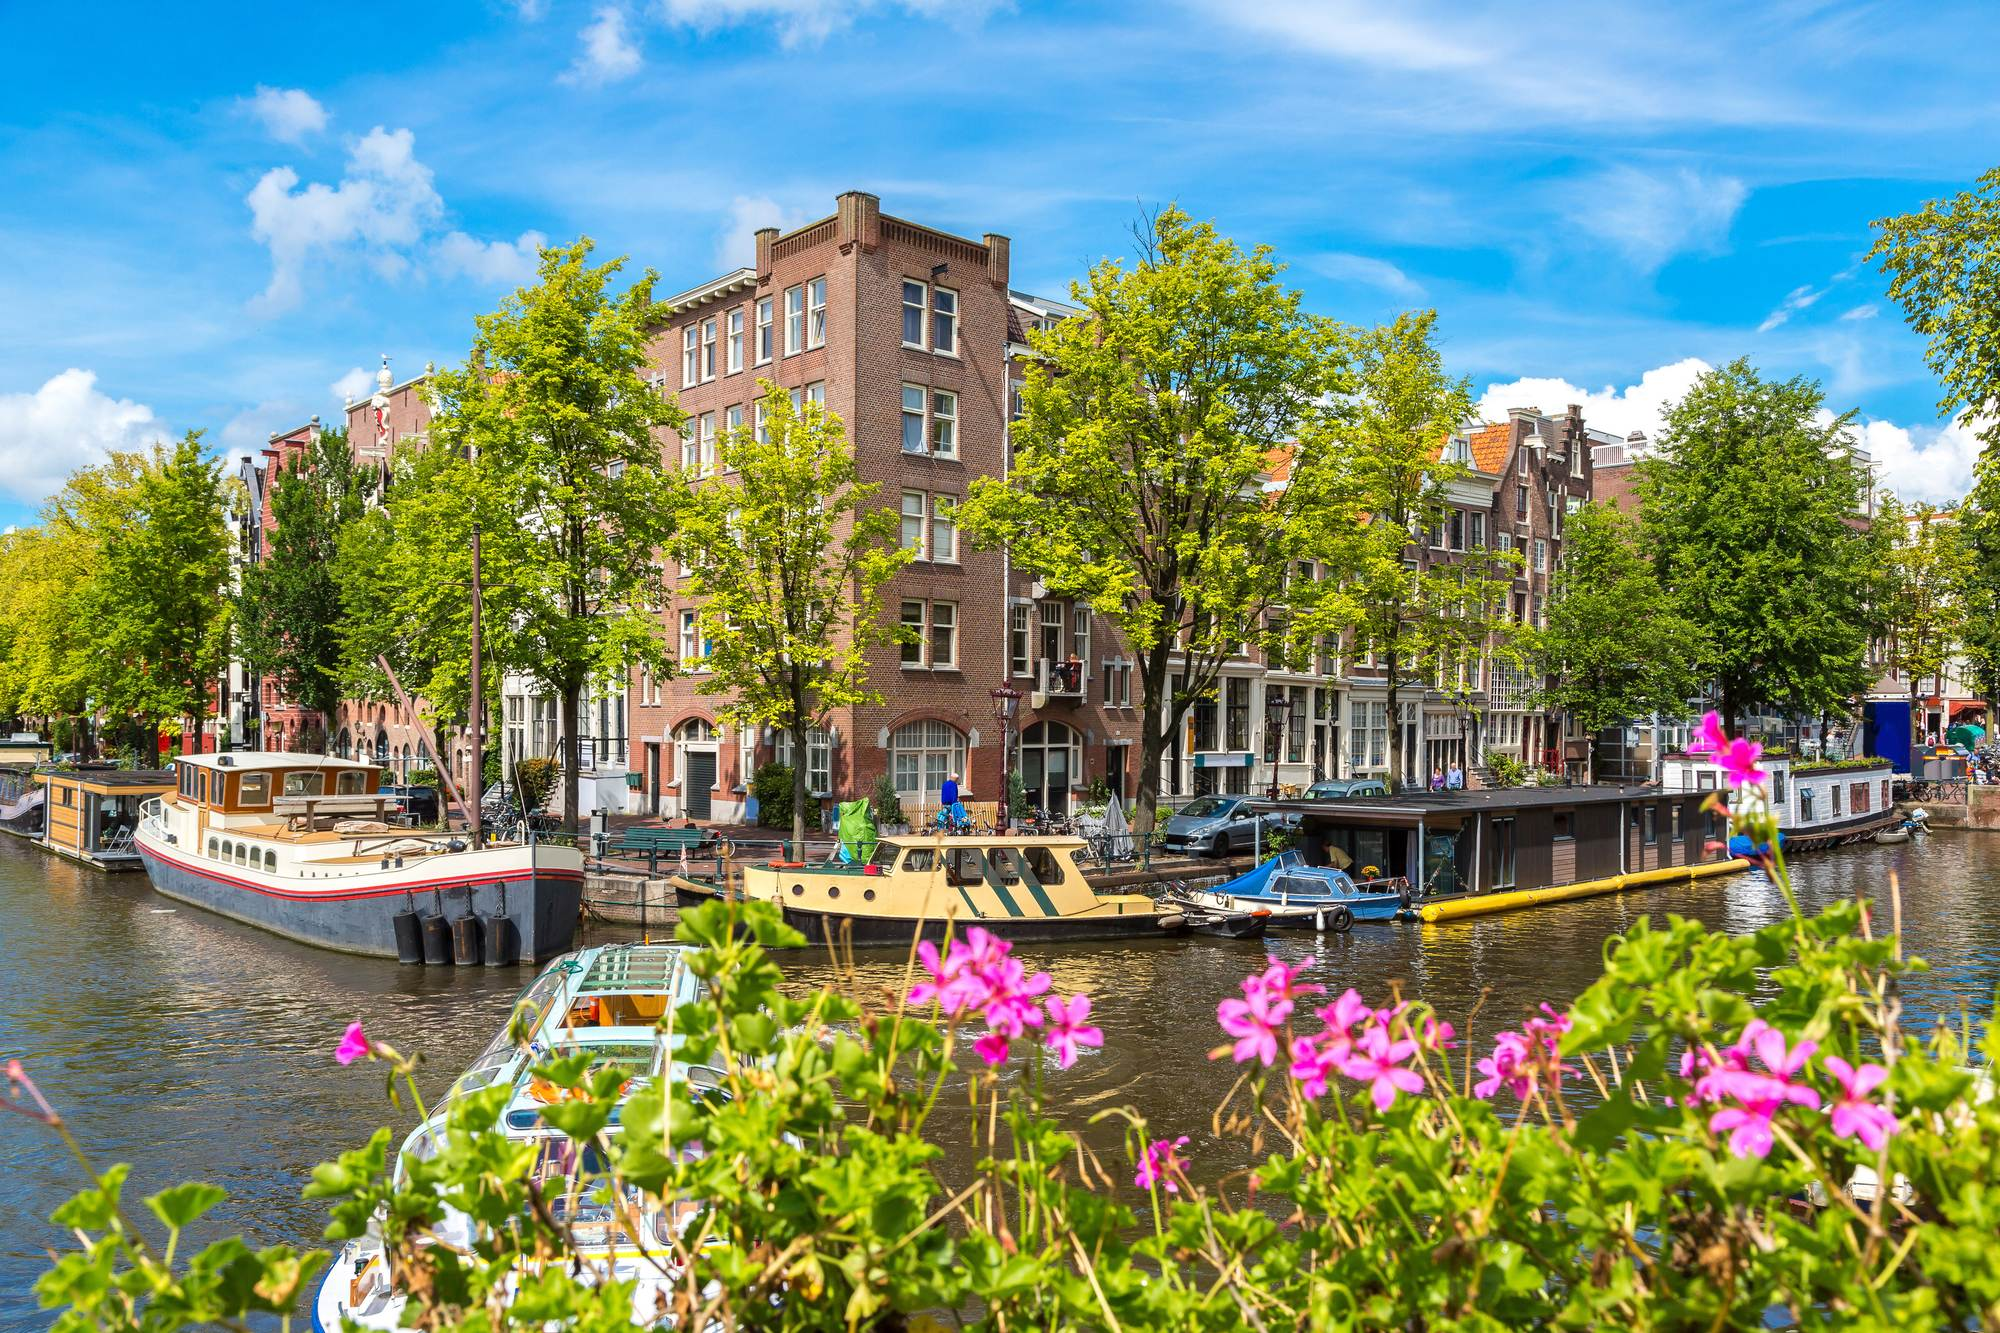 A-canal-in-Amsterdam-in-36-degree-summer-weather